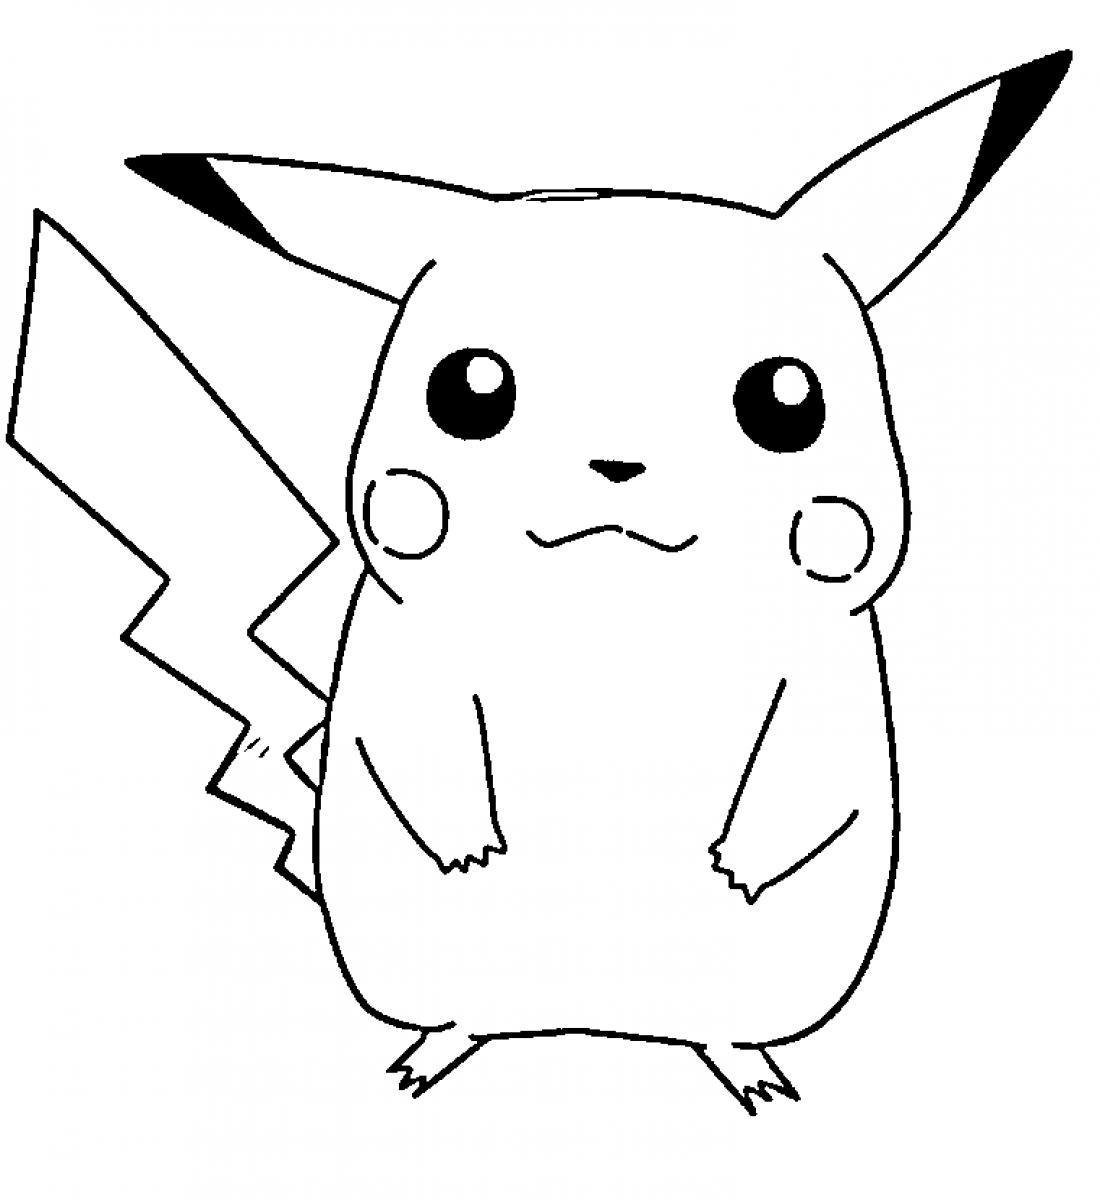 Dibujos de pikachu para colorear e imprimir gratis for Pikachu coloring pages printable